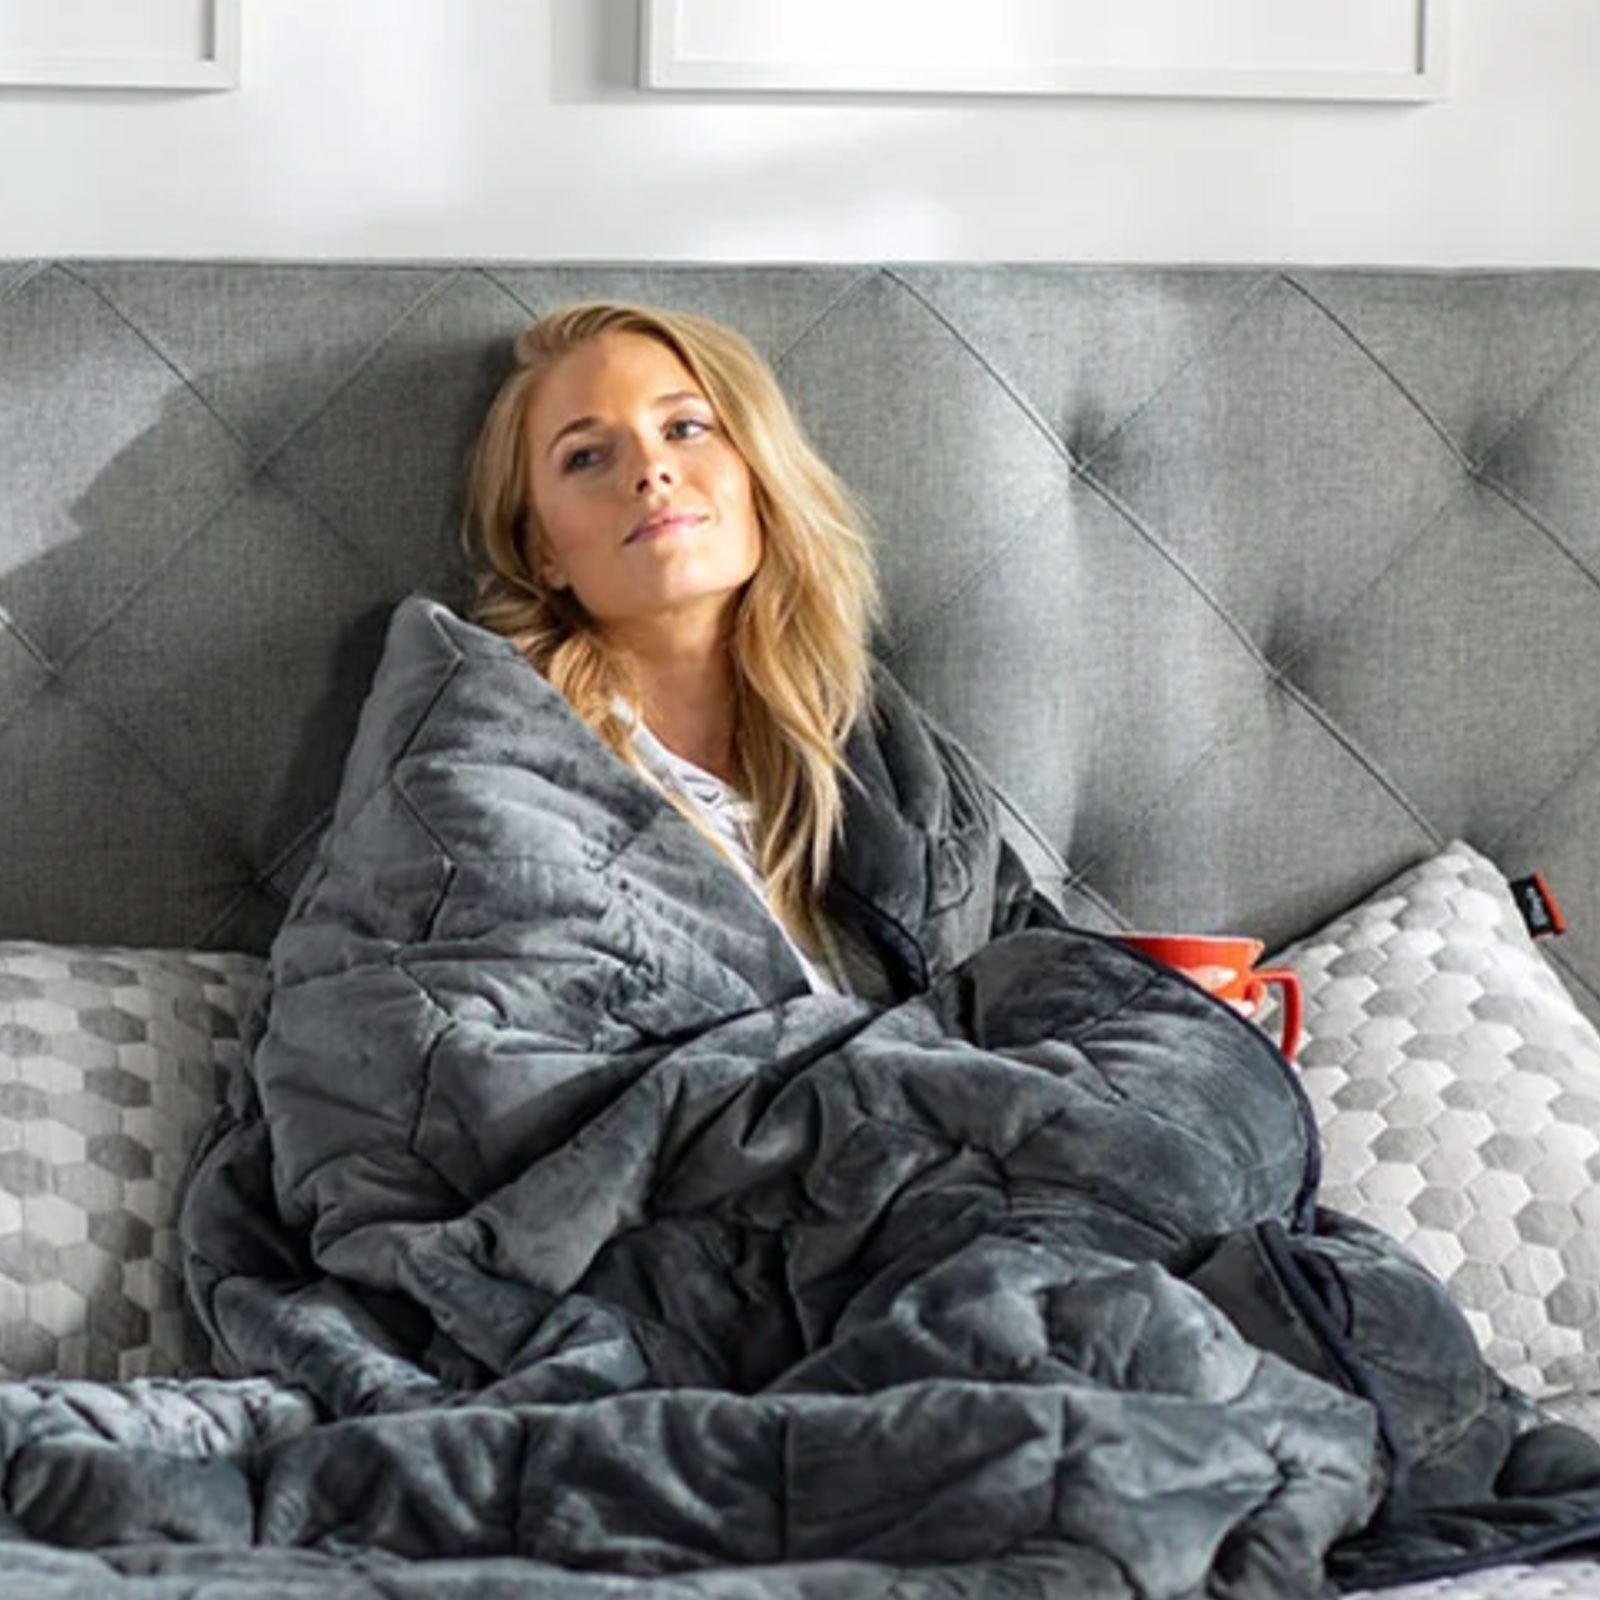 For better cuddling: Layla Weighted Blanket